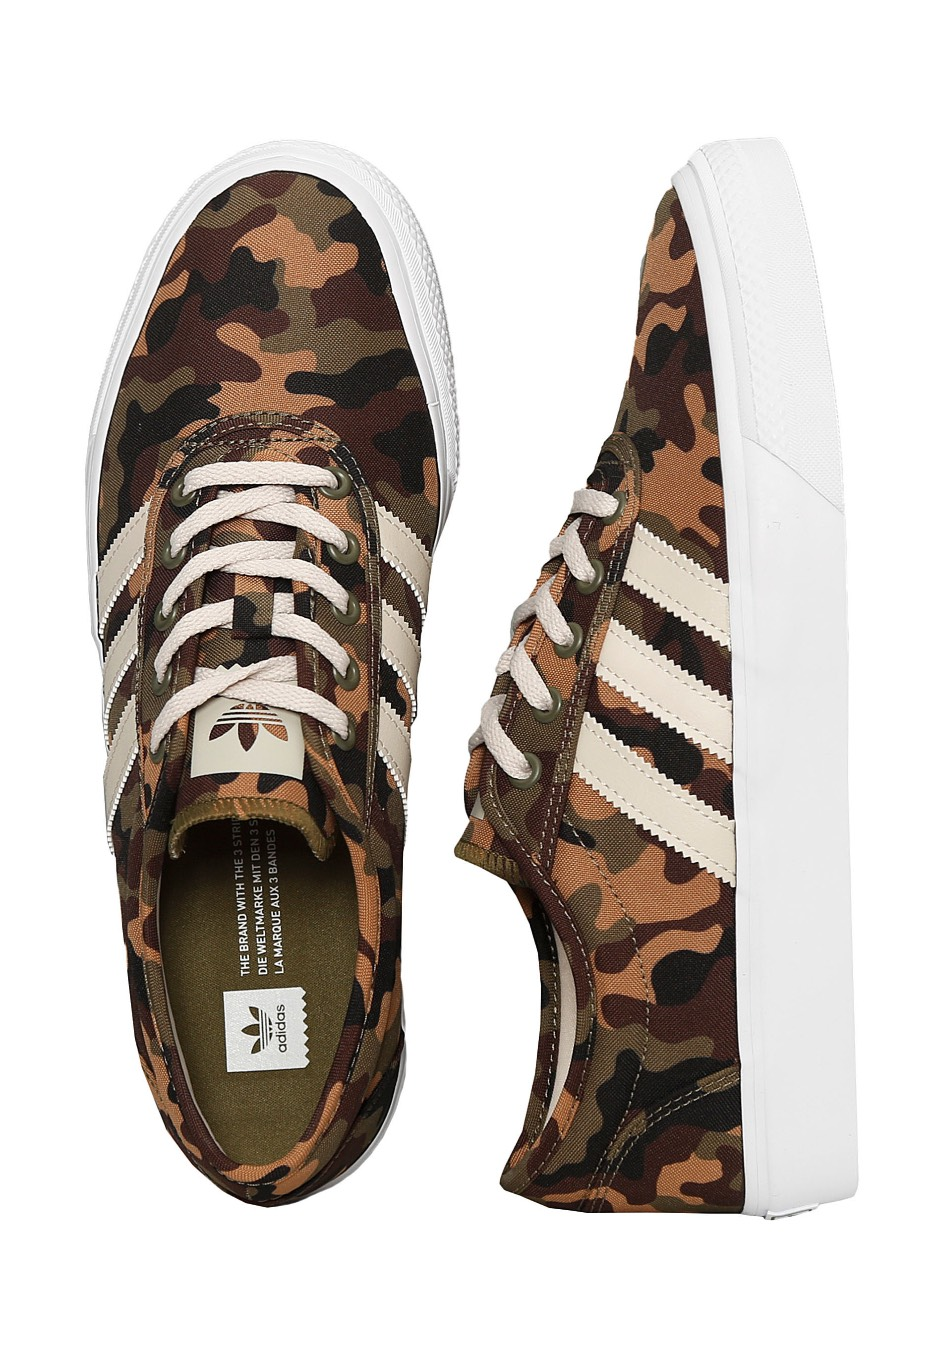 best service 6f122 b4dde Adidas - Adi-Ease Olive CargoClearBrownFtwr White - Shoes - Impericon.com  UK